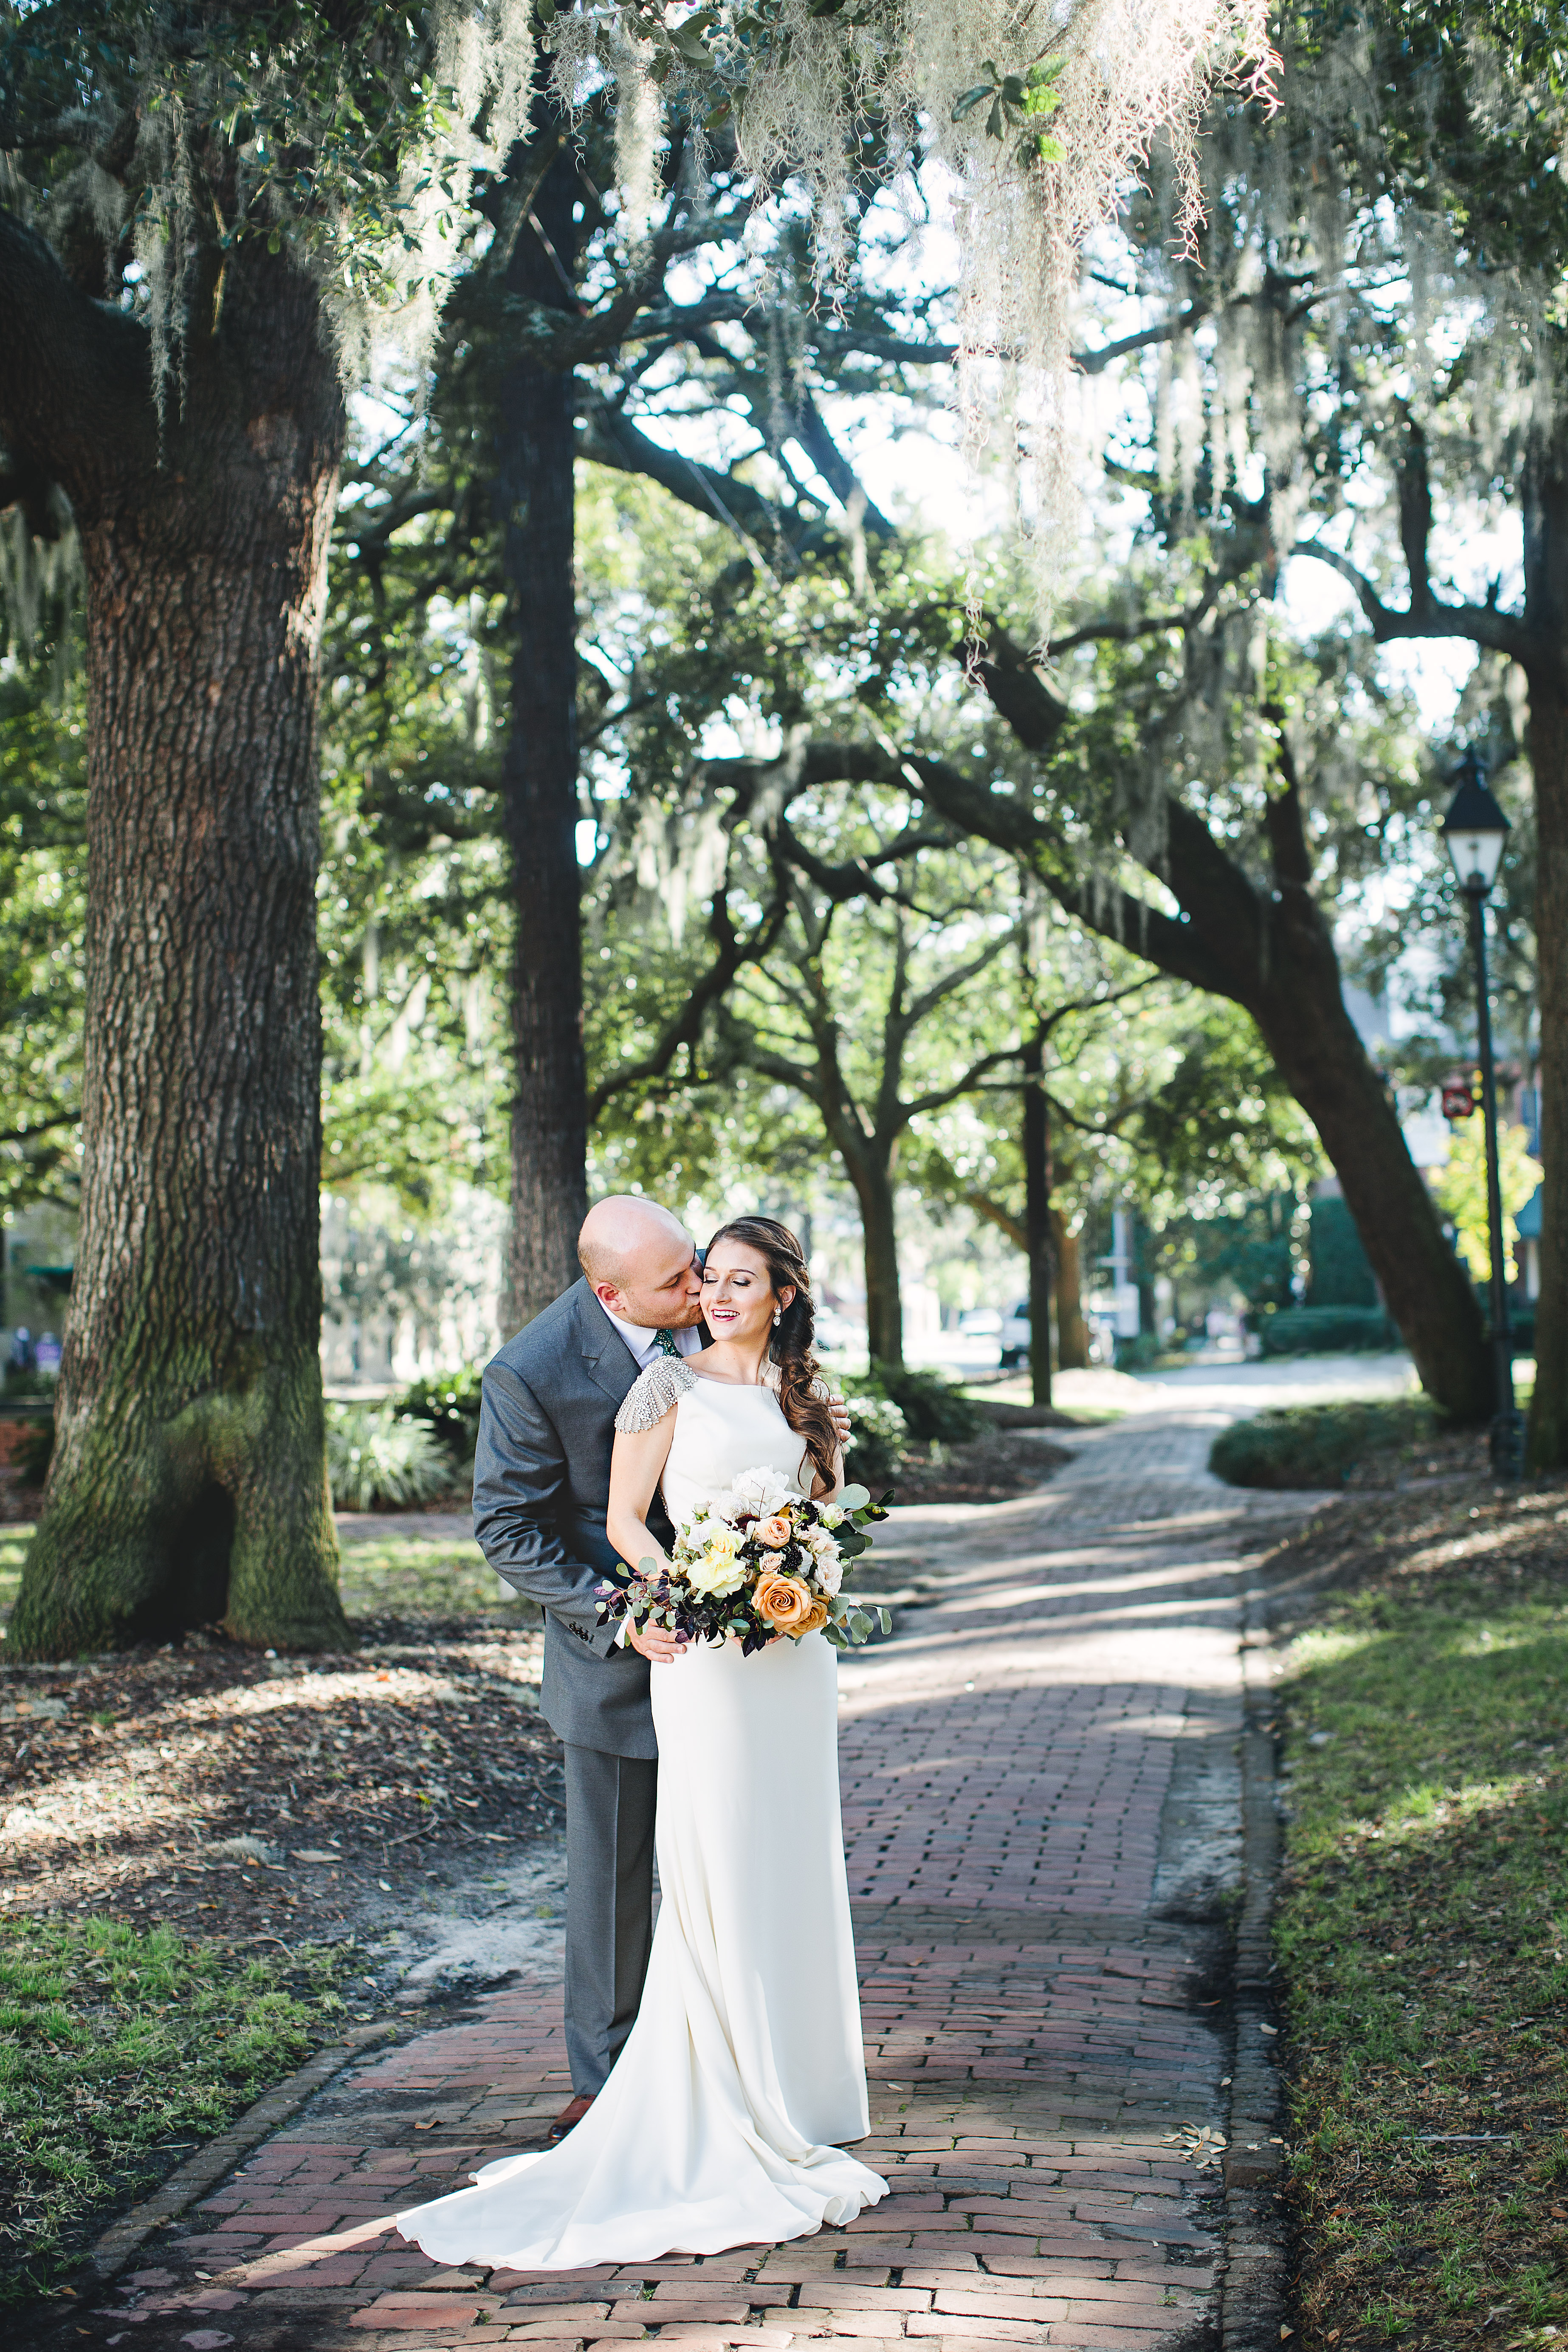 izzy-hudgins-photography-savannah-wedding-ivory-and-beau-bridal-boutique-savannah-wedding-planner-colonial-house-of-flowers-forsyth-park-wedding-old-fort-jackson-wedding-squidwed-films-savannah-boutique-savannah-weddings-18.jpg